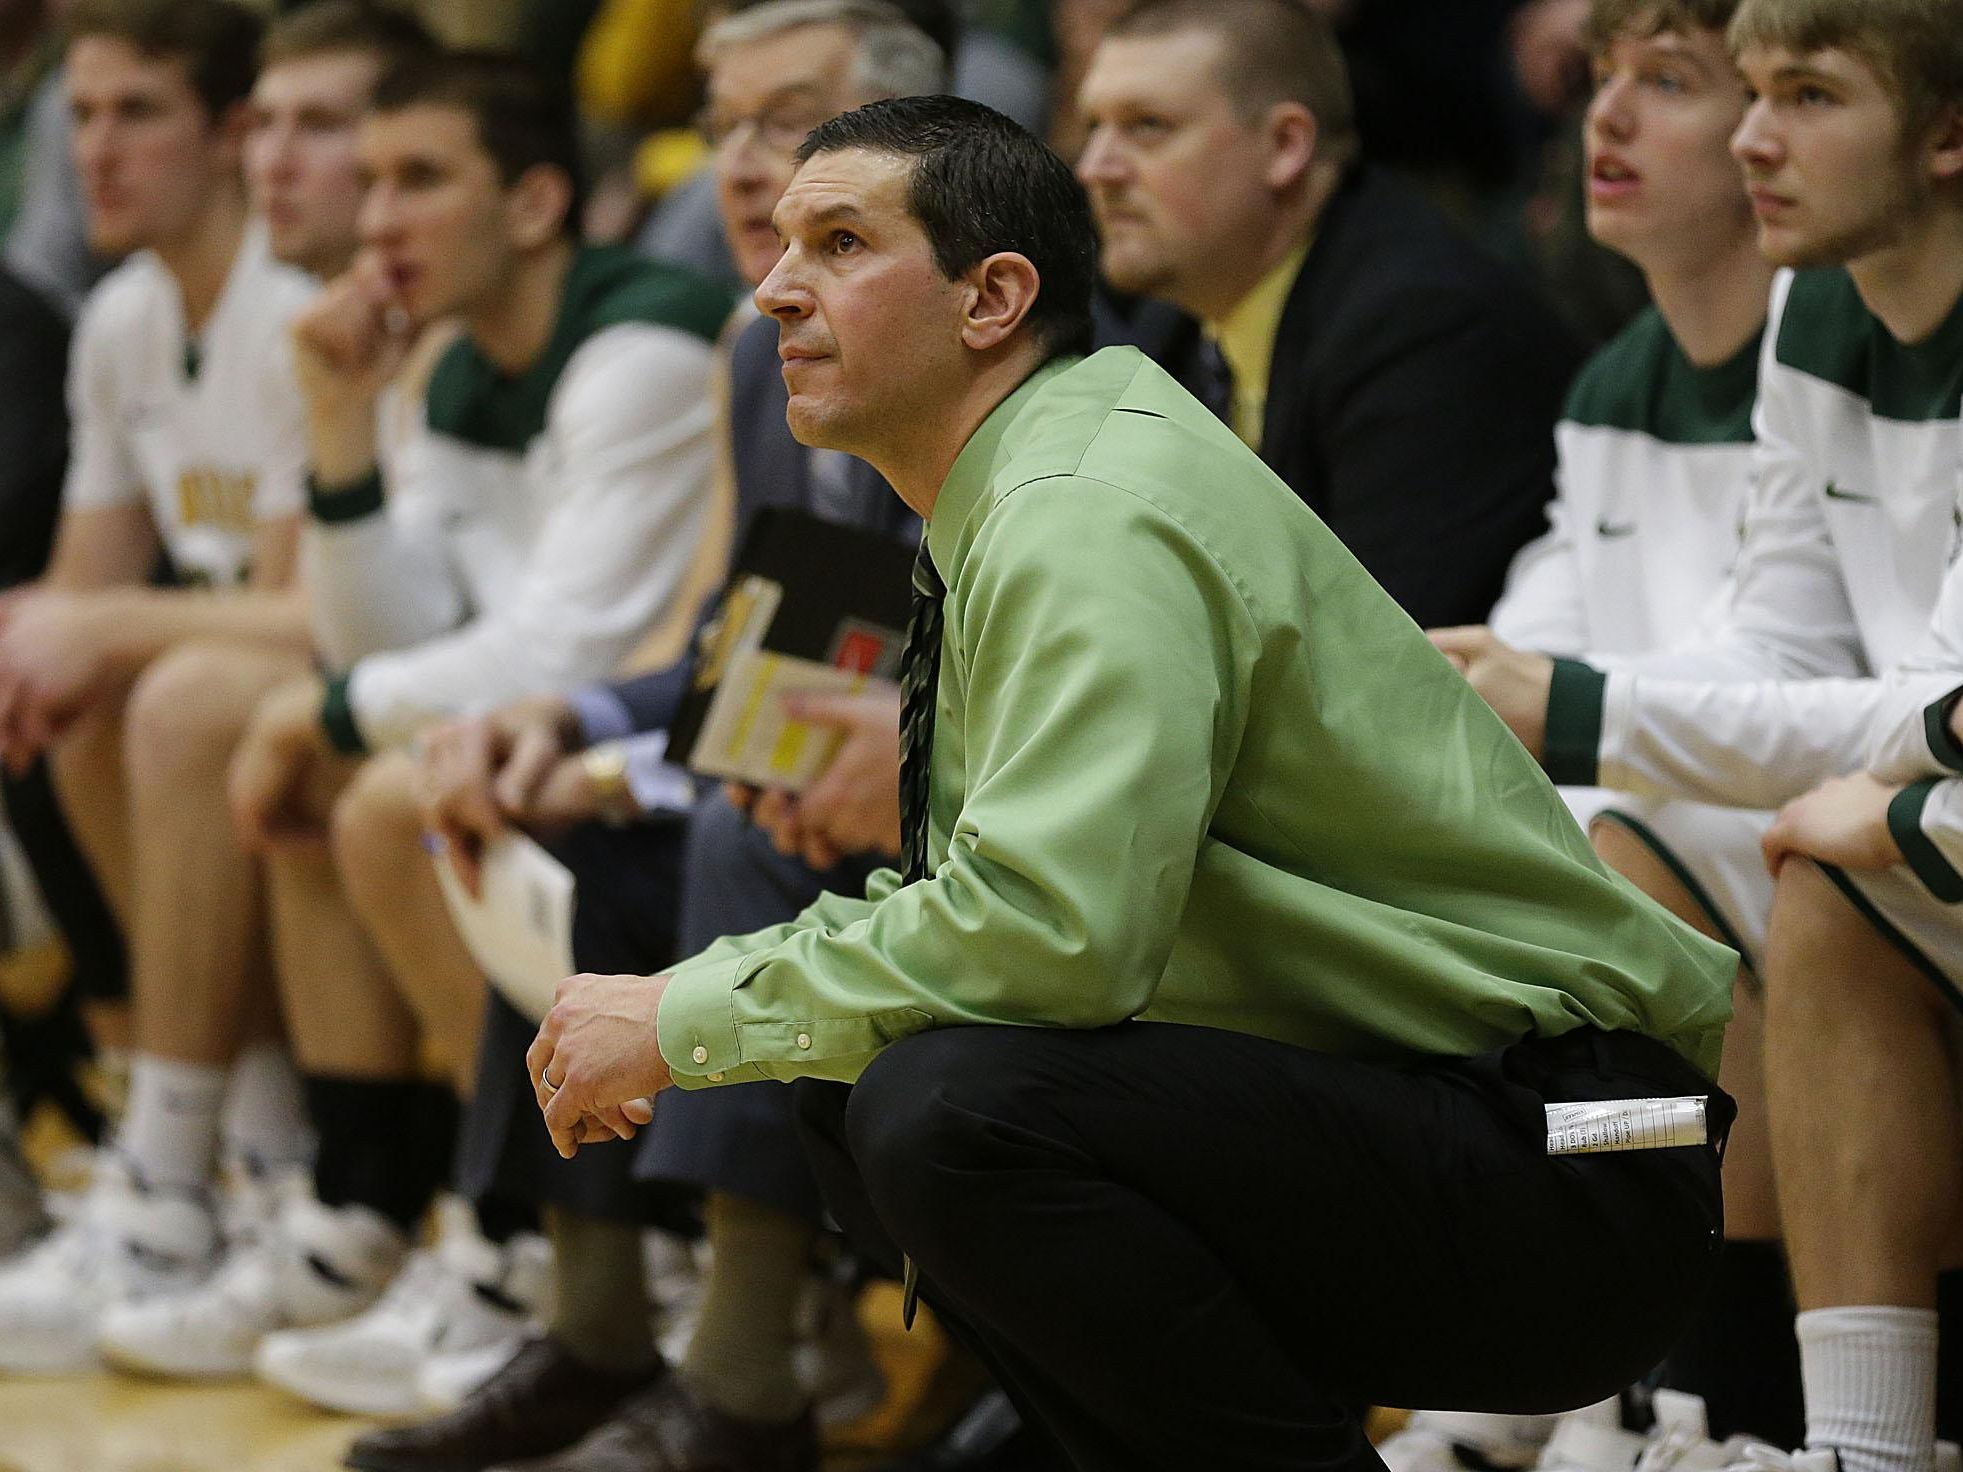 Gary Grzesk is in his 11th season as the coach of the St. Norbert College men's basketball team.